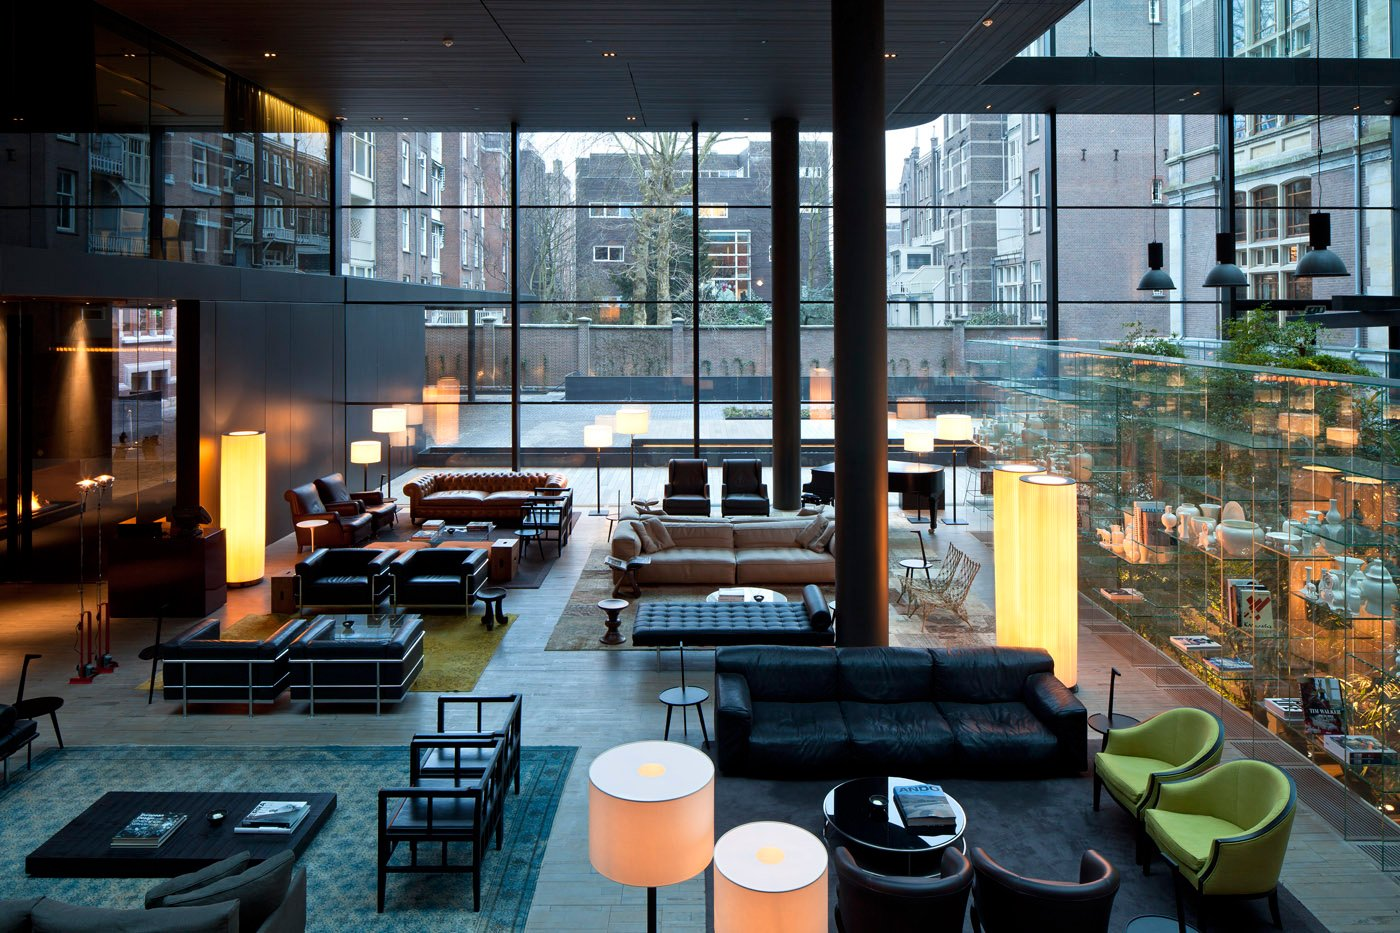 The Conservatorium is outfitted with furniture by Cassina, Kartell, and Living Divani.  Iain Aitch's Favorites from The Conservatorium, Amsterdam